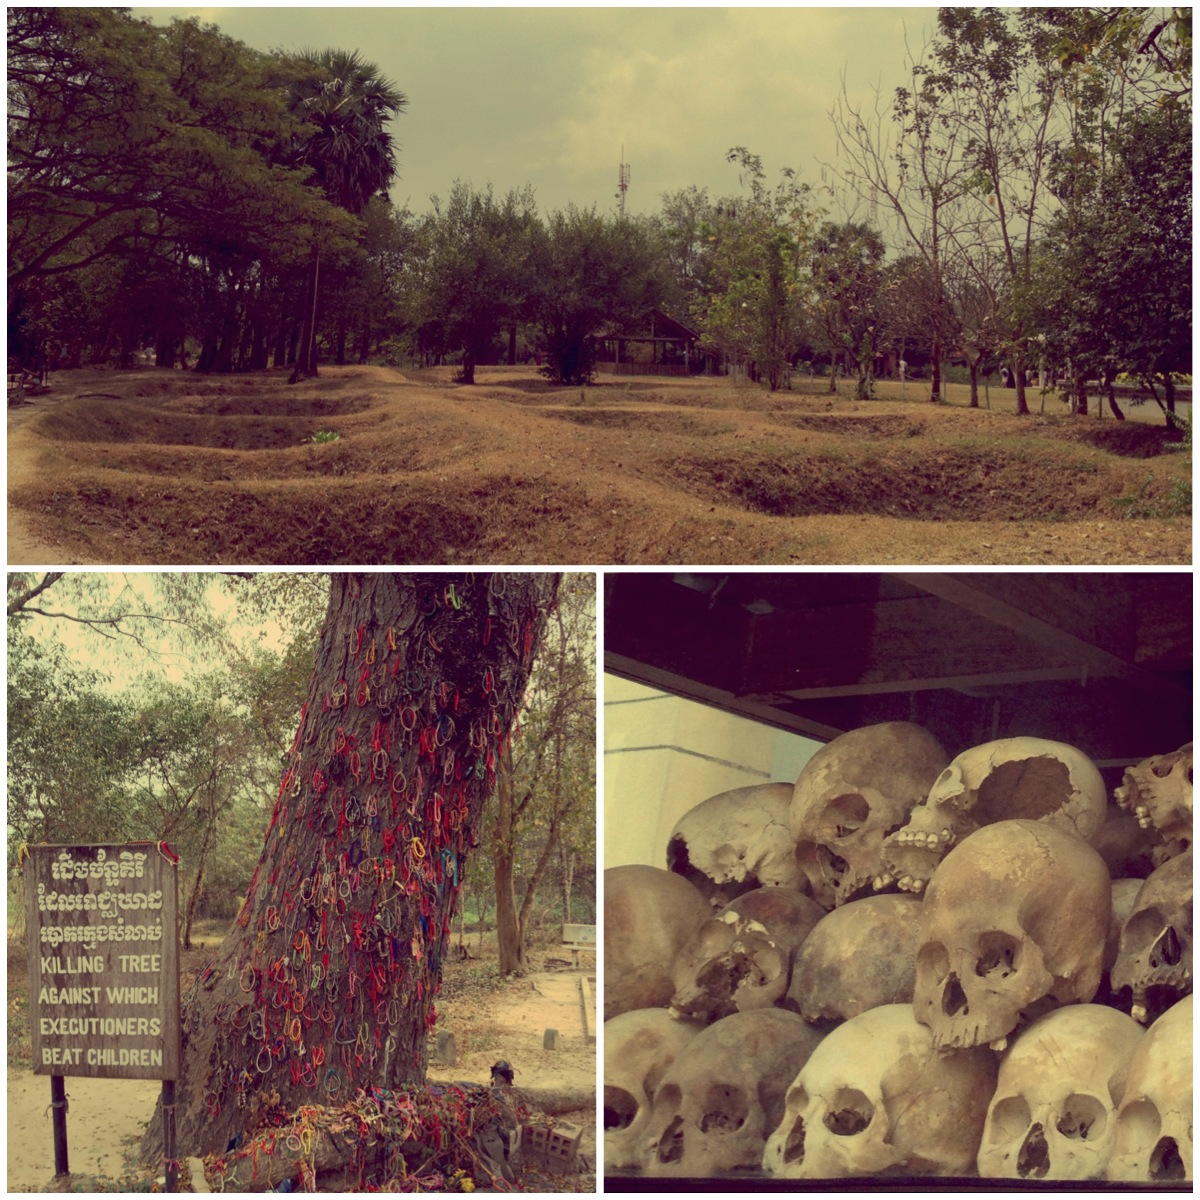 cambodia the inevitability of killing fields The reality of man's inhumanity to fellow man is conveyed in harrowing detail on this visit to the killing fields of cambodia at choeung ek genocidal centre.